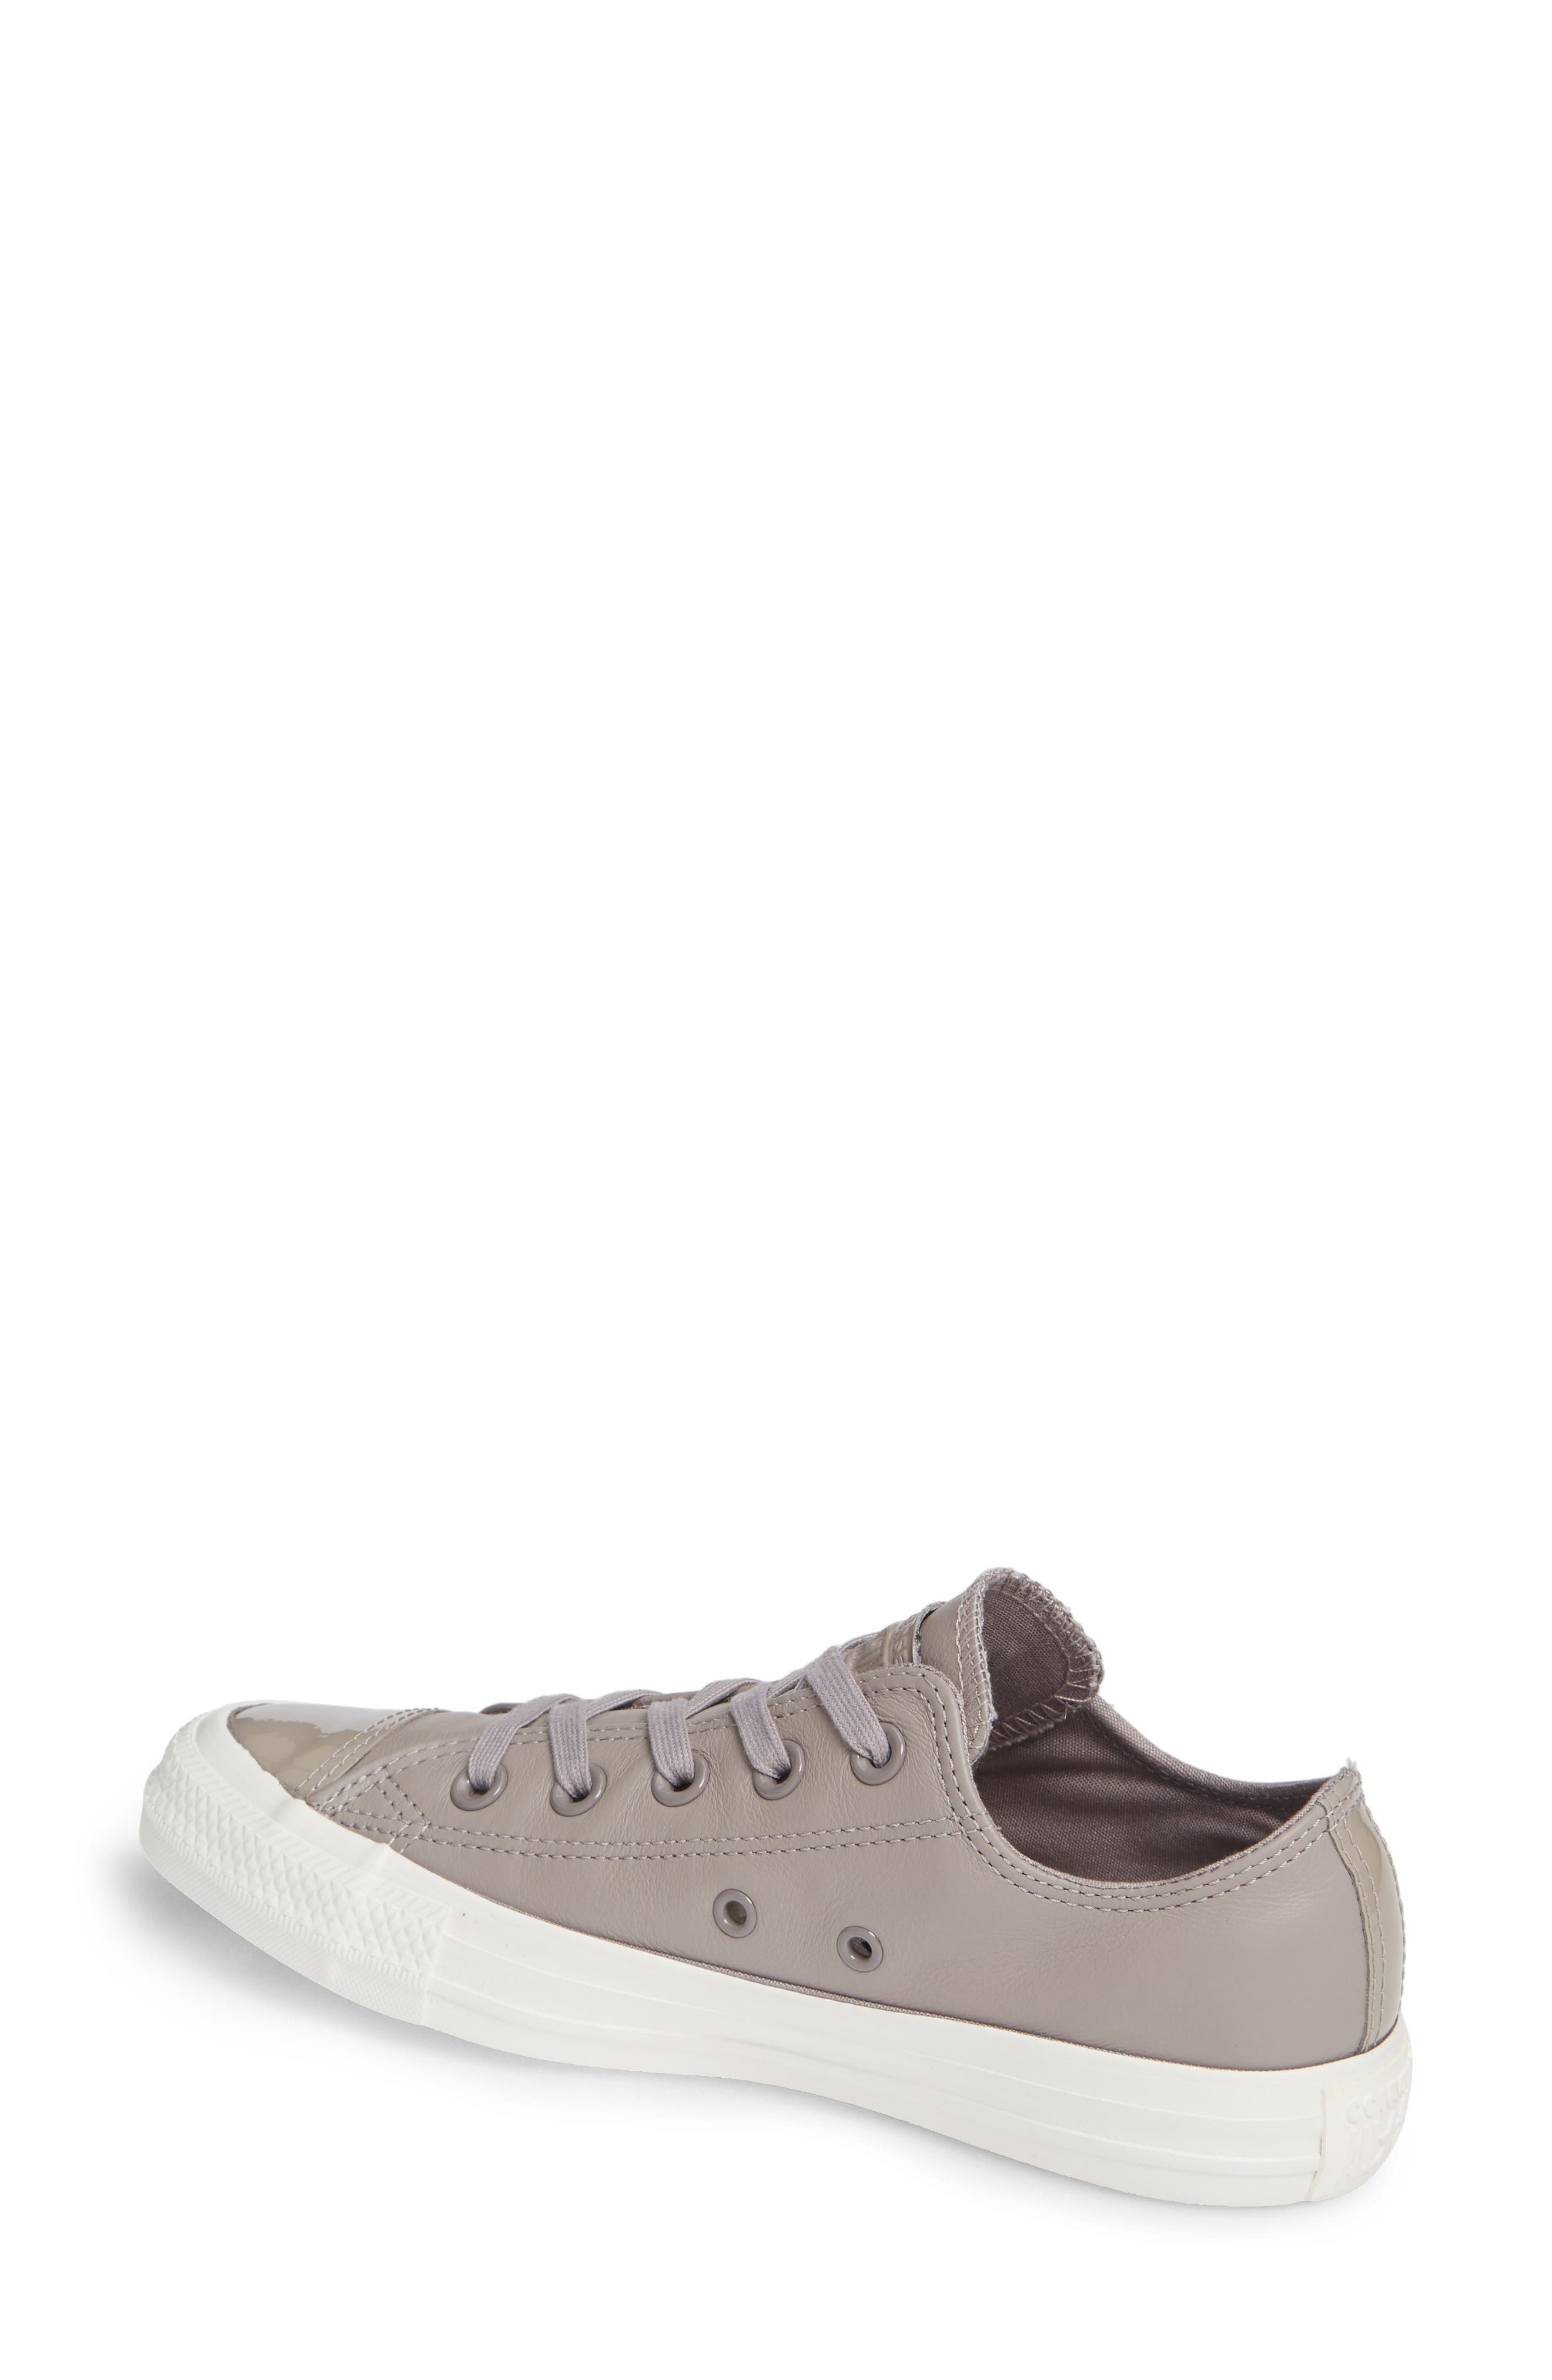 CONVERSE,                             All Star<sup>®</sup> Leather Patent Low Top Sneaker,                             Alternate thumbnail 2, color,                             020